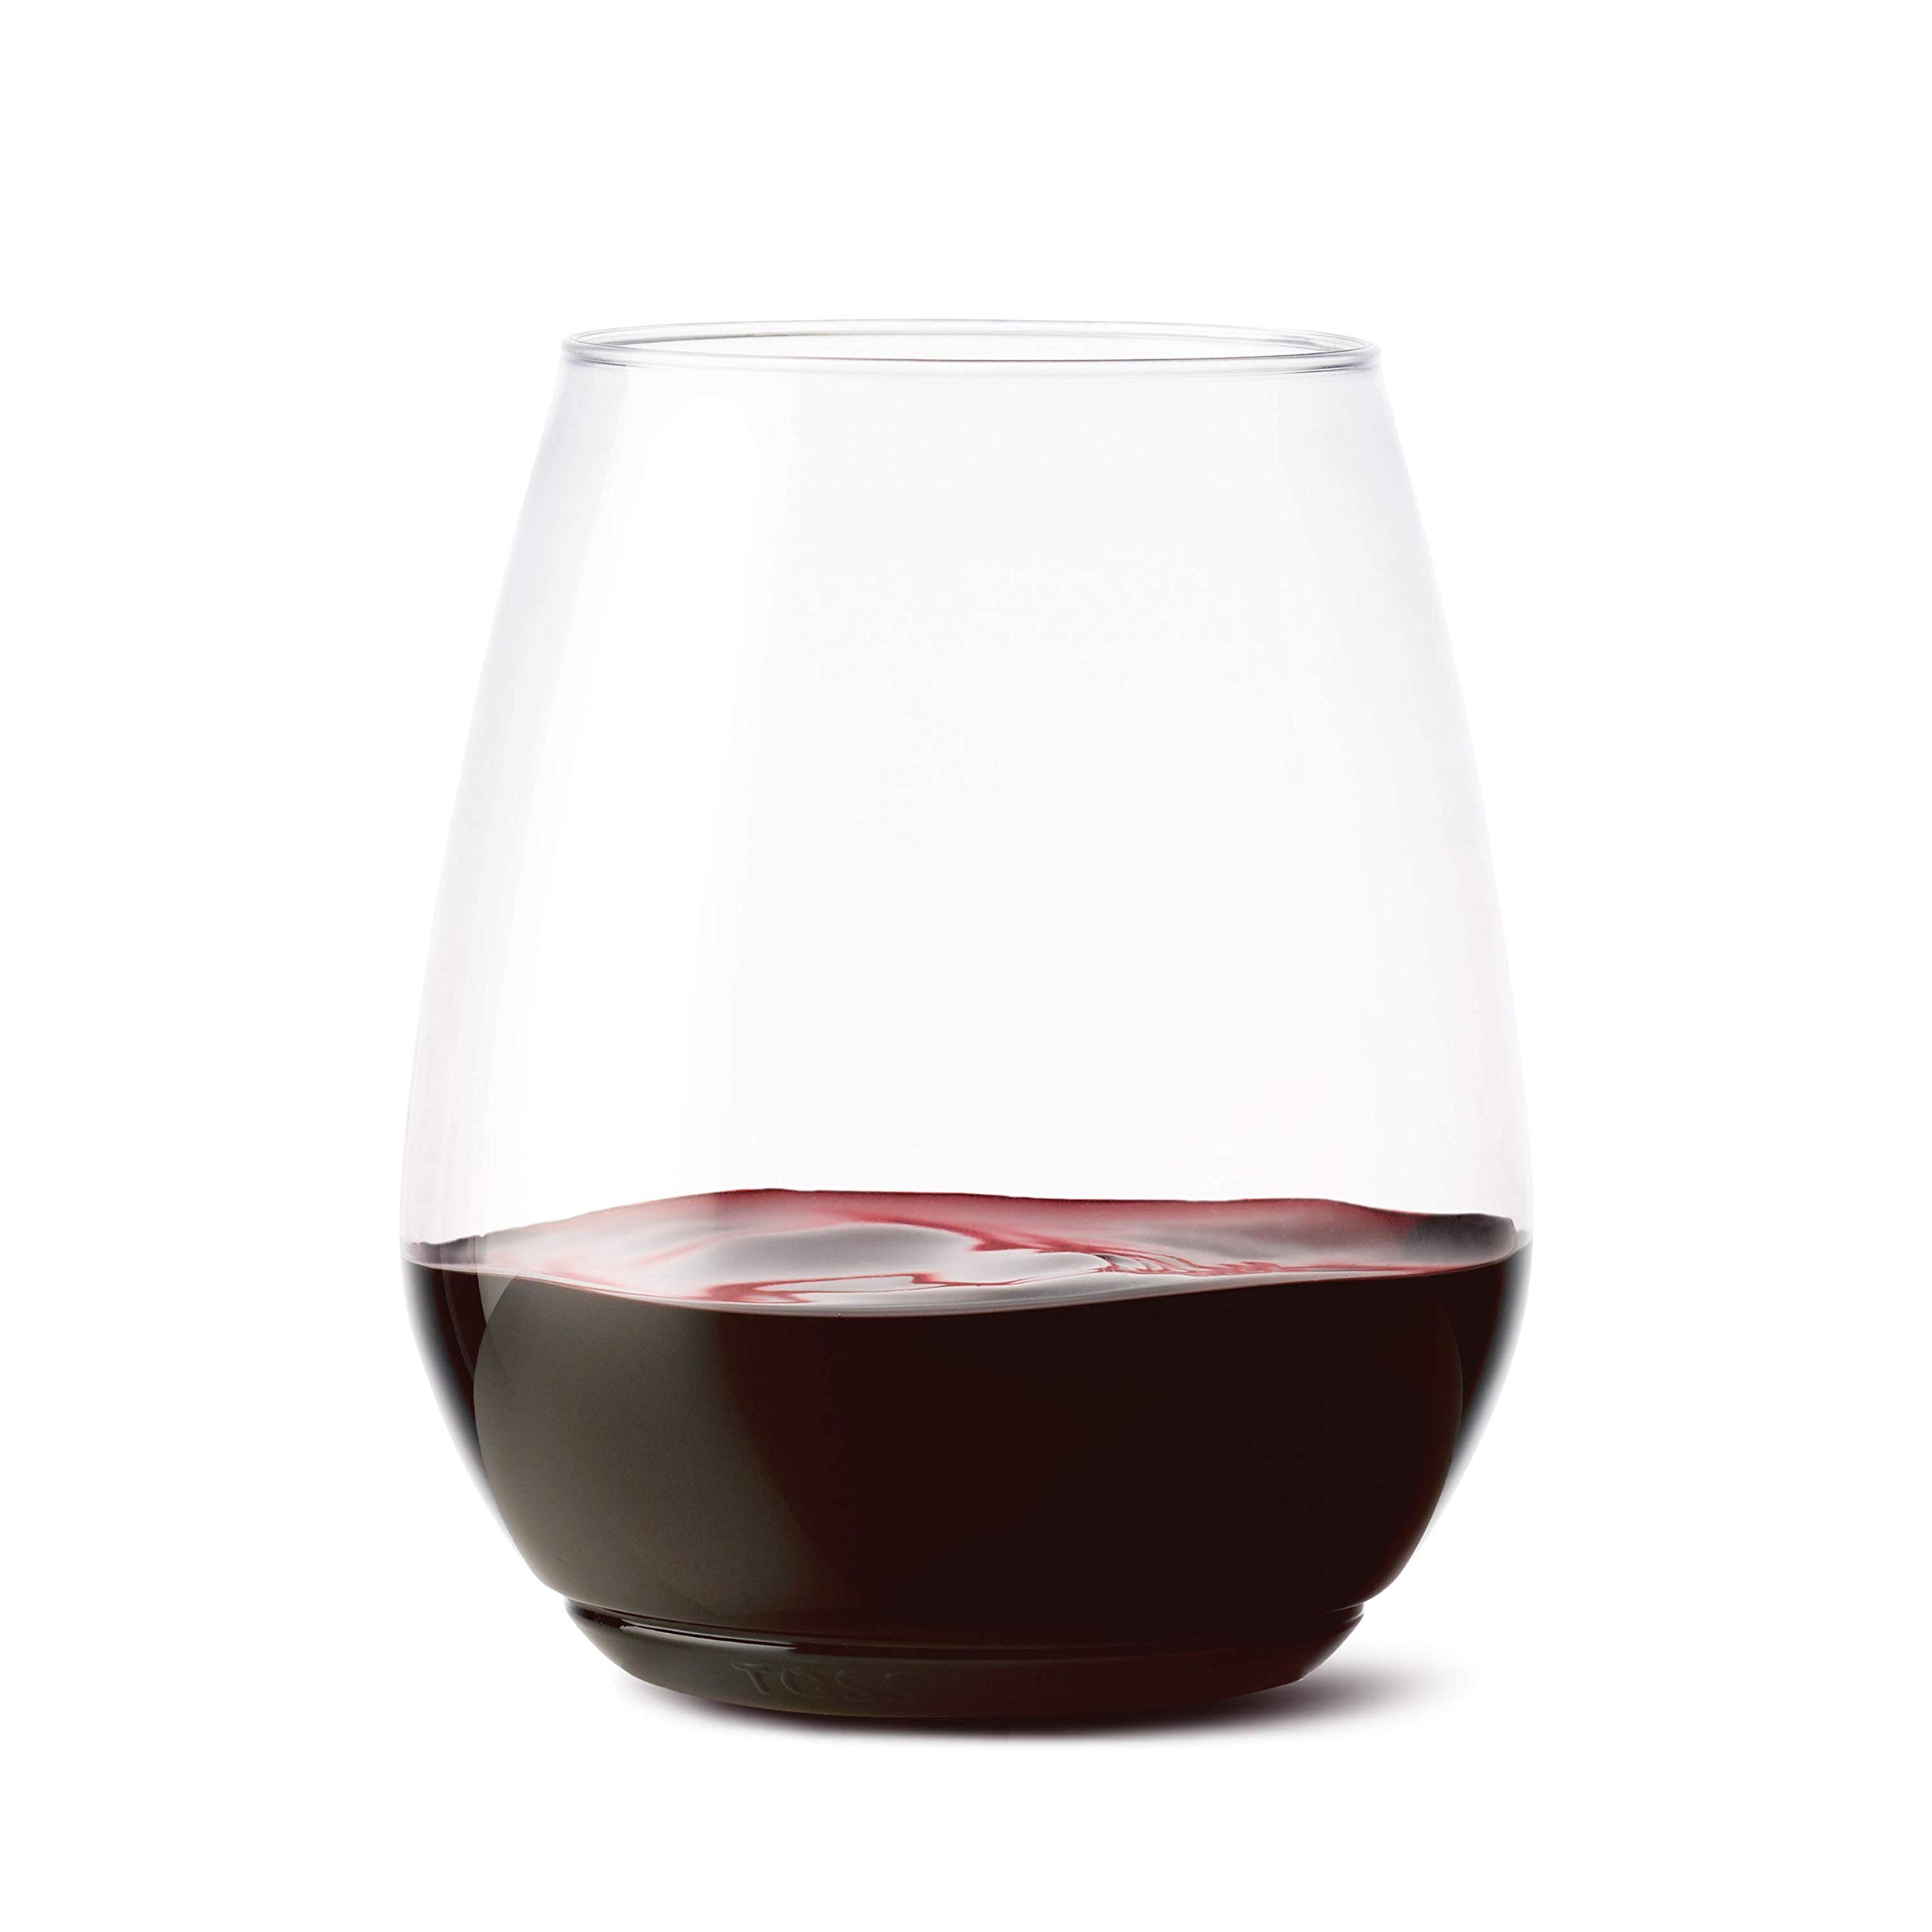 TOSSWARE 18oz Tumbler - recyclable wine plastic cup - SET OF 48 - stemless, shatterproof and BPA-free wine glasses by TOSSWARE